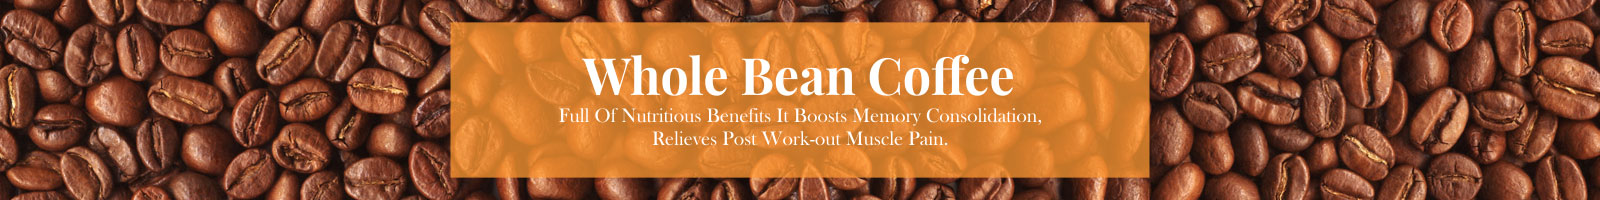 Whole bean Coffee